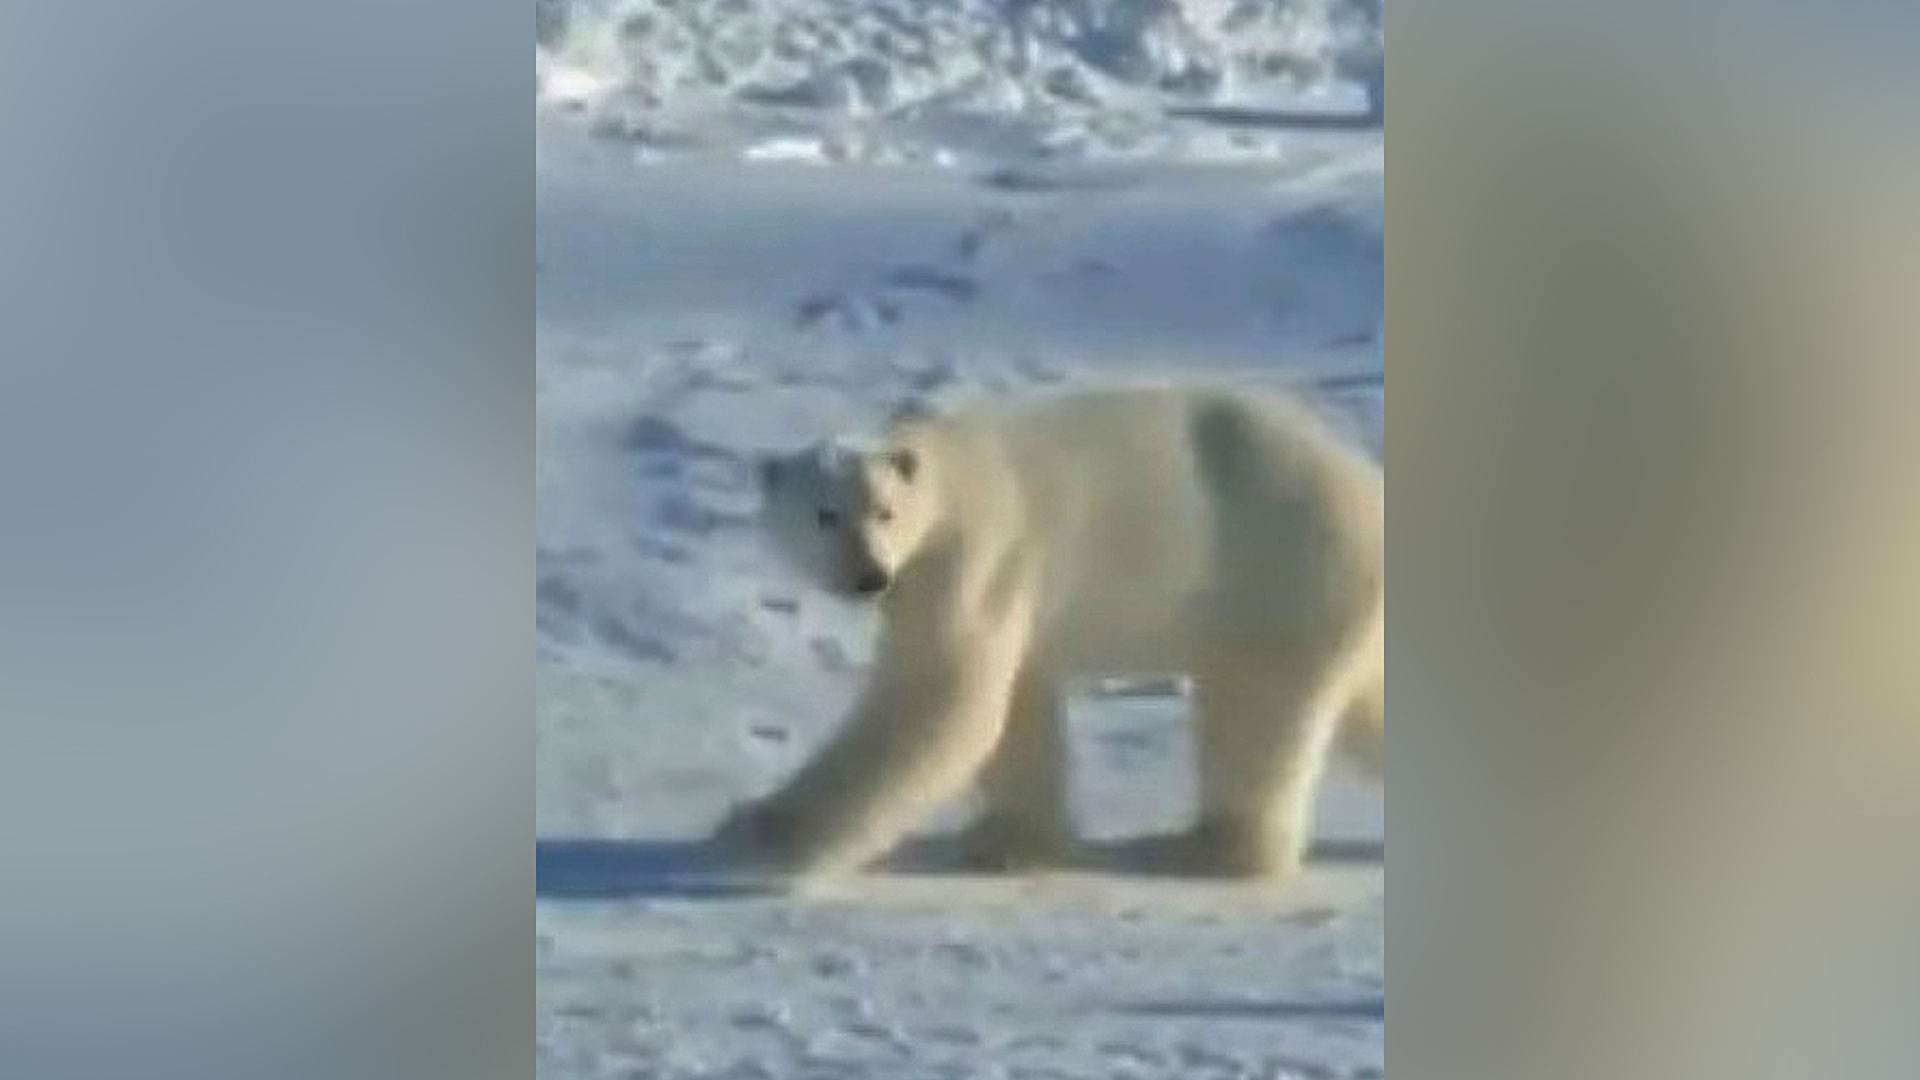 VIDEO: Polar Scare: Hungry Bear Frightened Off With Gunfire As It Heads For Children's Playground